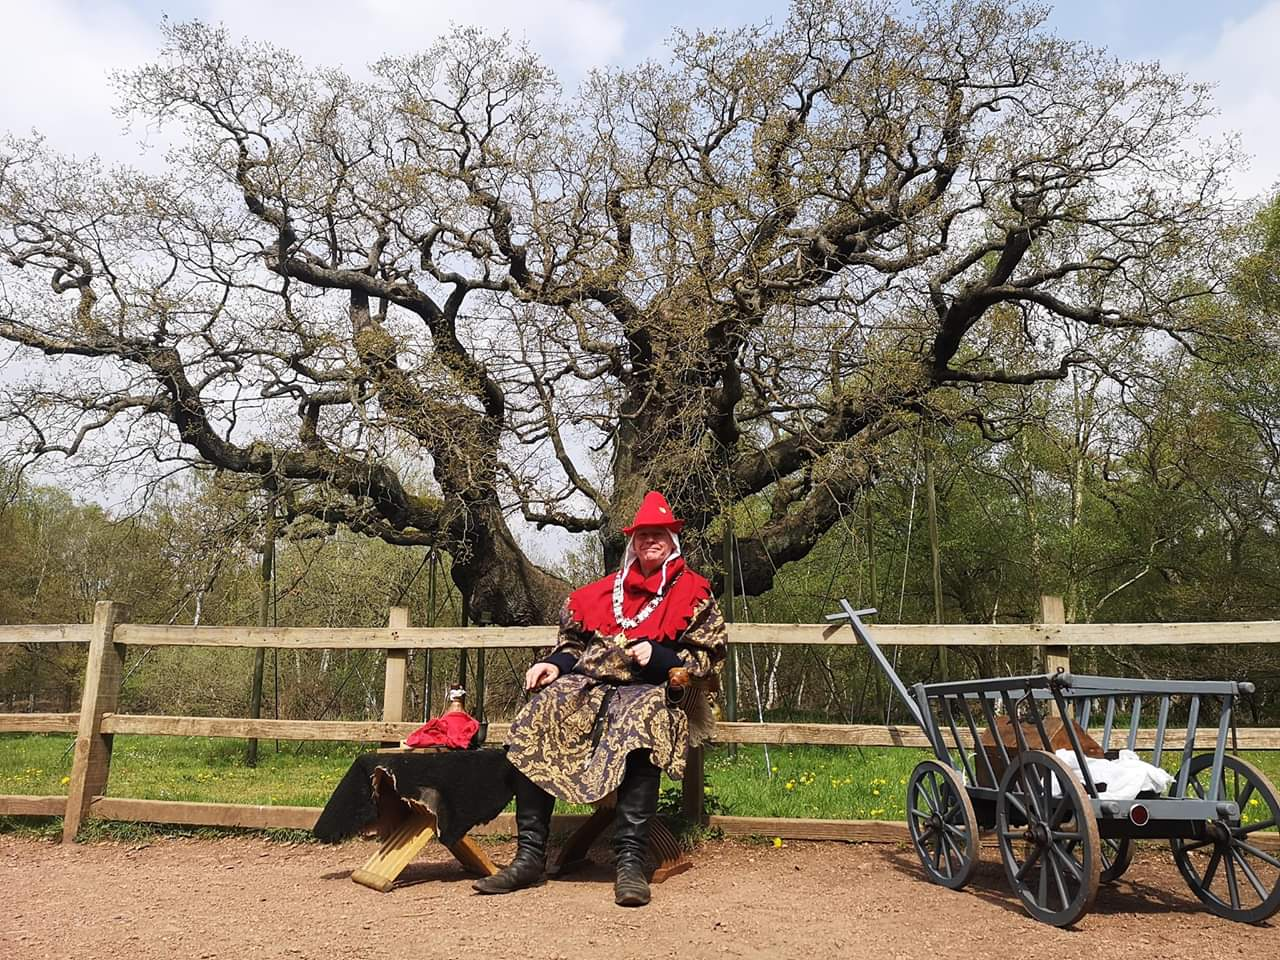 A tour with the sheriff of nottingham at Sherwood Forest